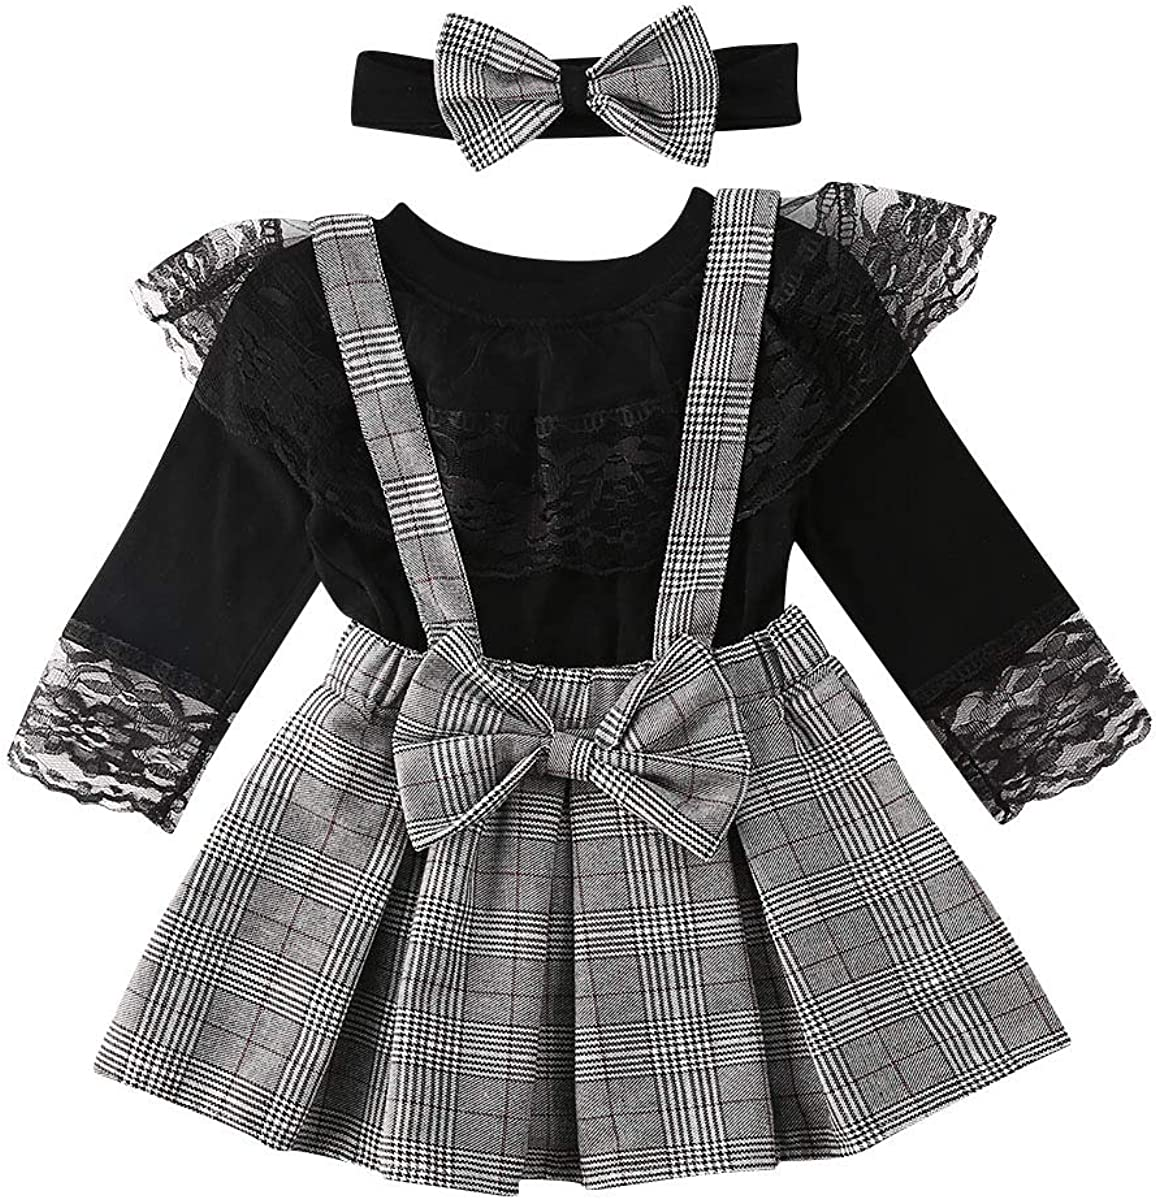 Little Brother Big Sister Outfits Lattice Long Sleeve Matching Toddler Romper Suspender Pants Tops Overall Skirt